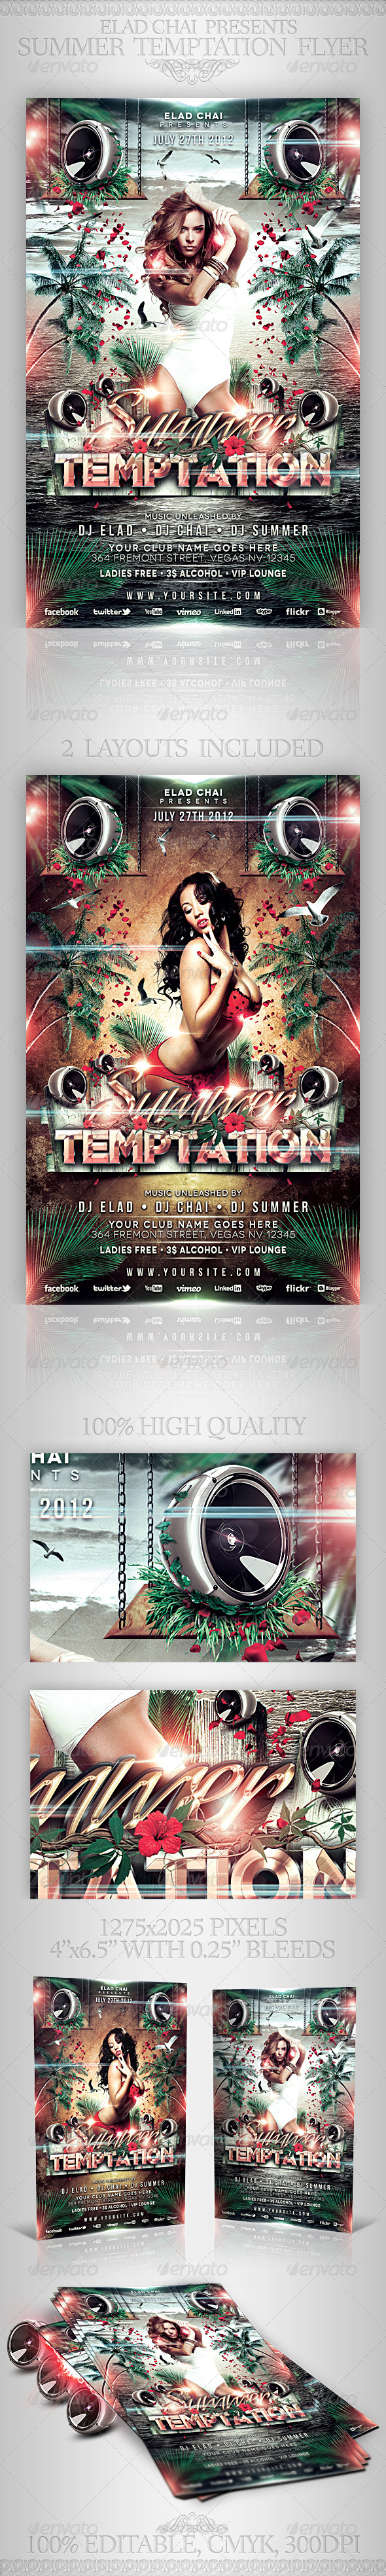 Summer Temptation Party Flyer Template - Clubs & Parties Events